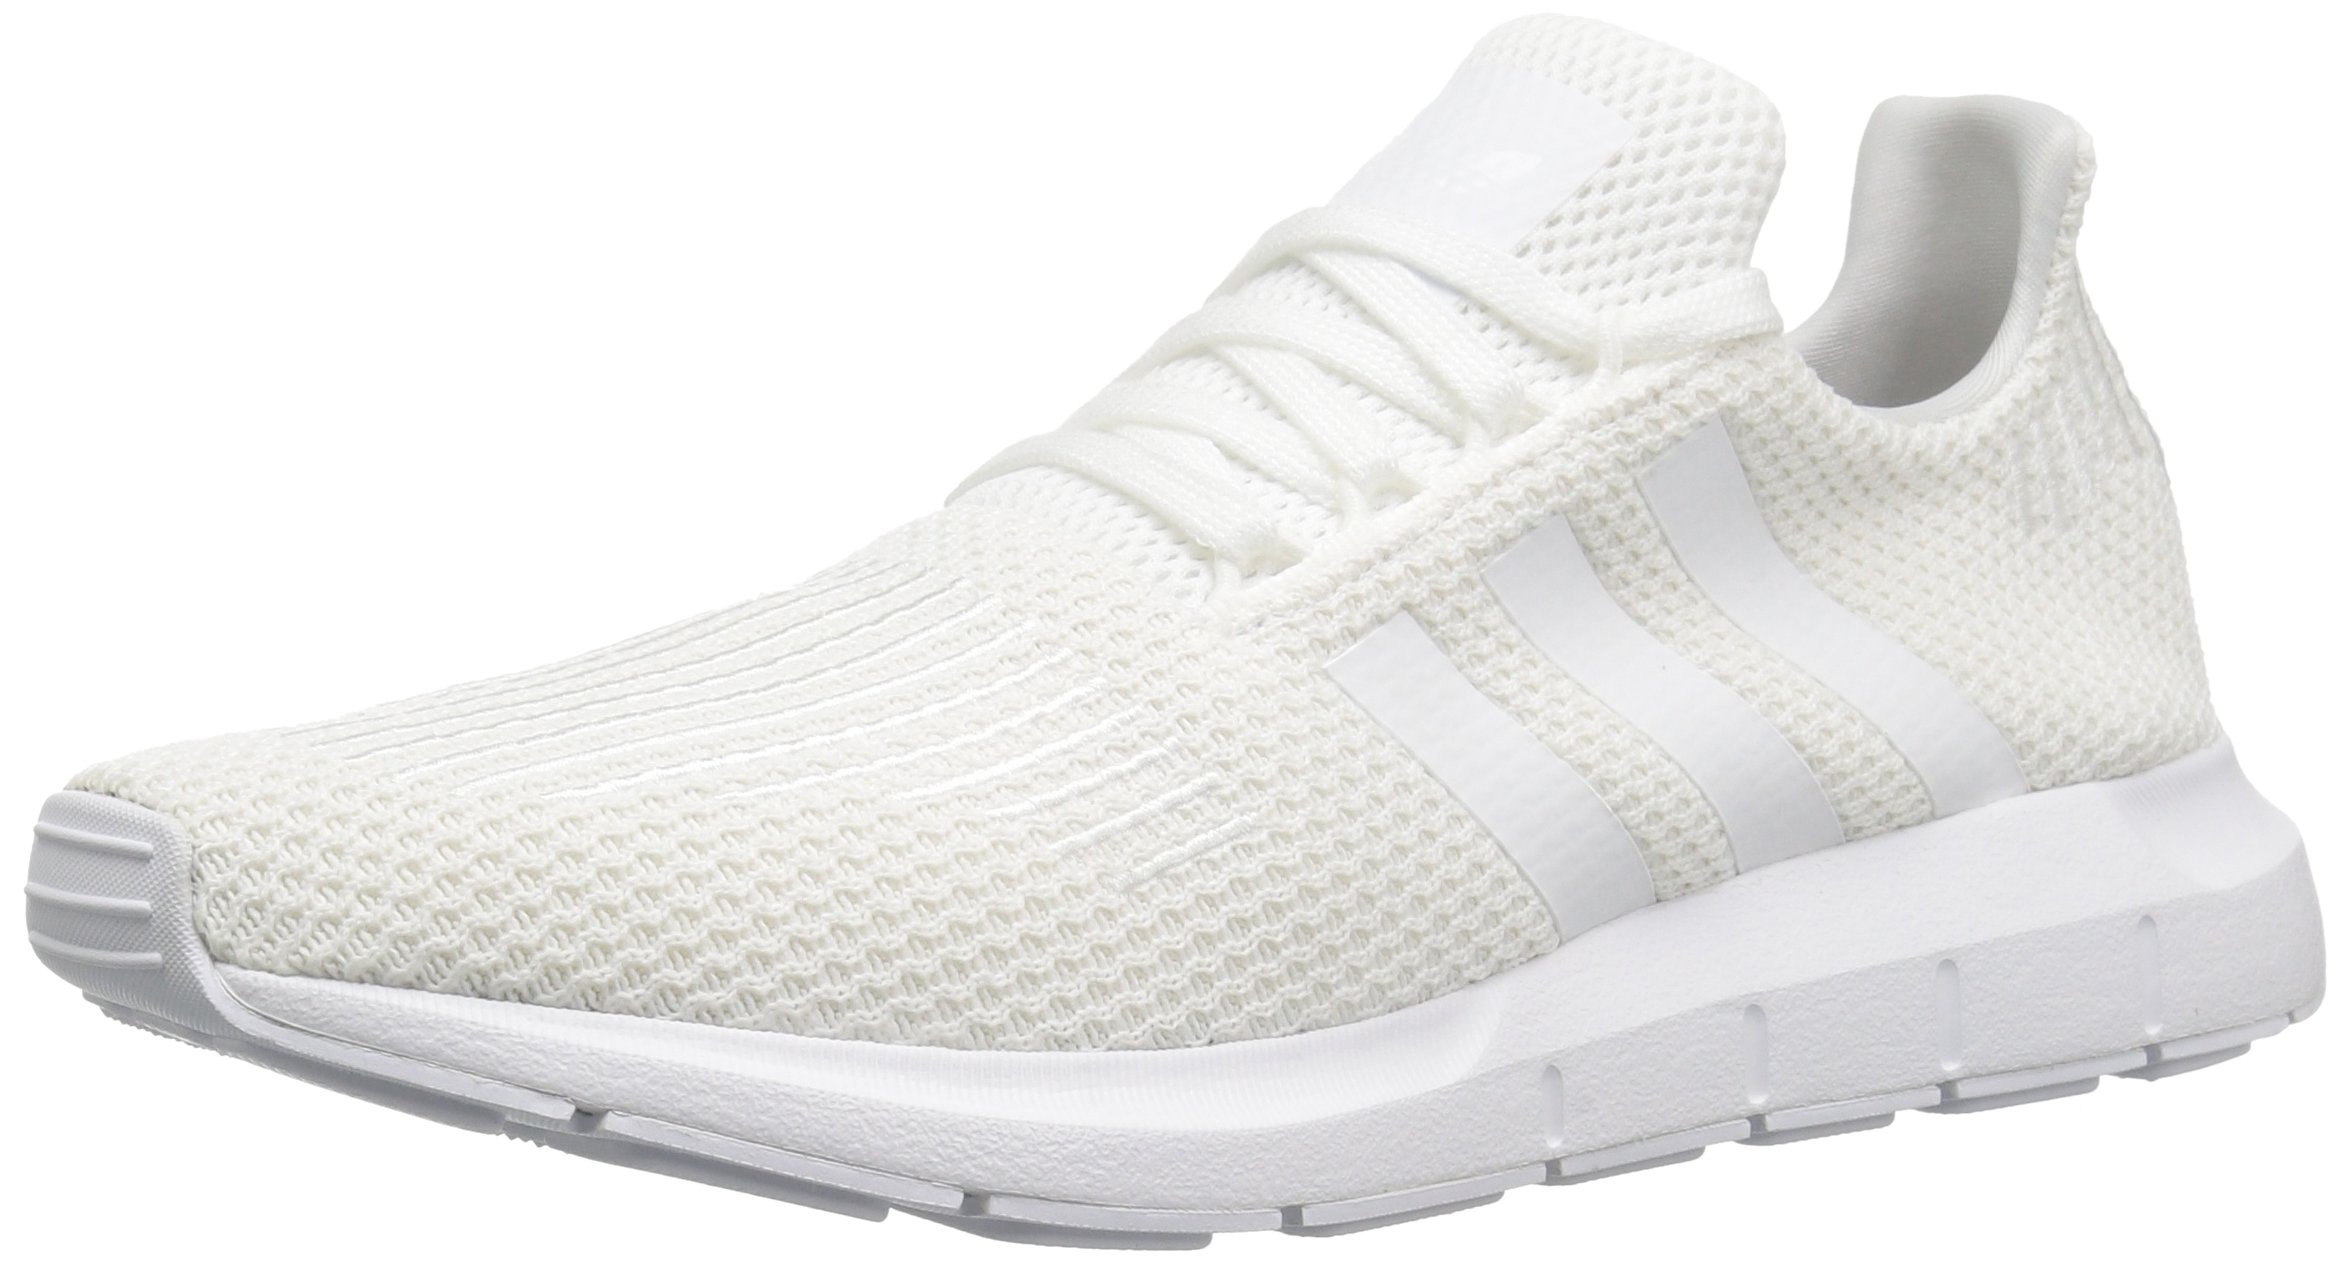 adidas Originals Men's Swift Running Shoe, White/White/Black, 9 M US by adidas Originals